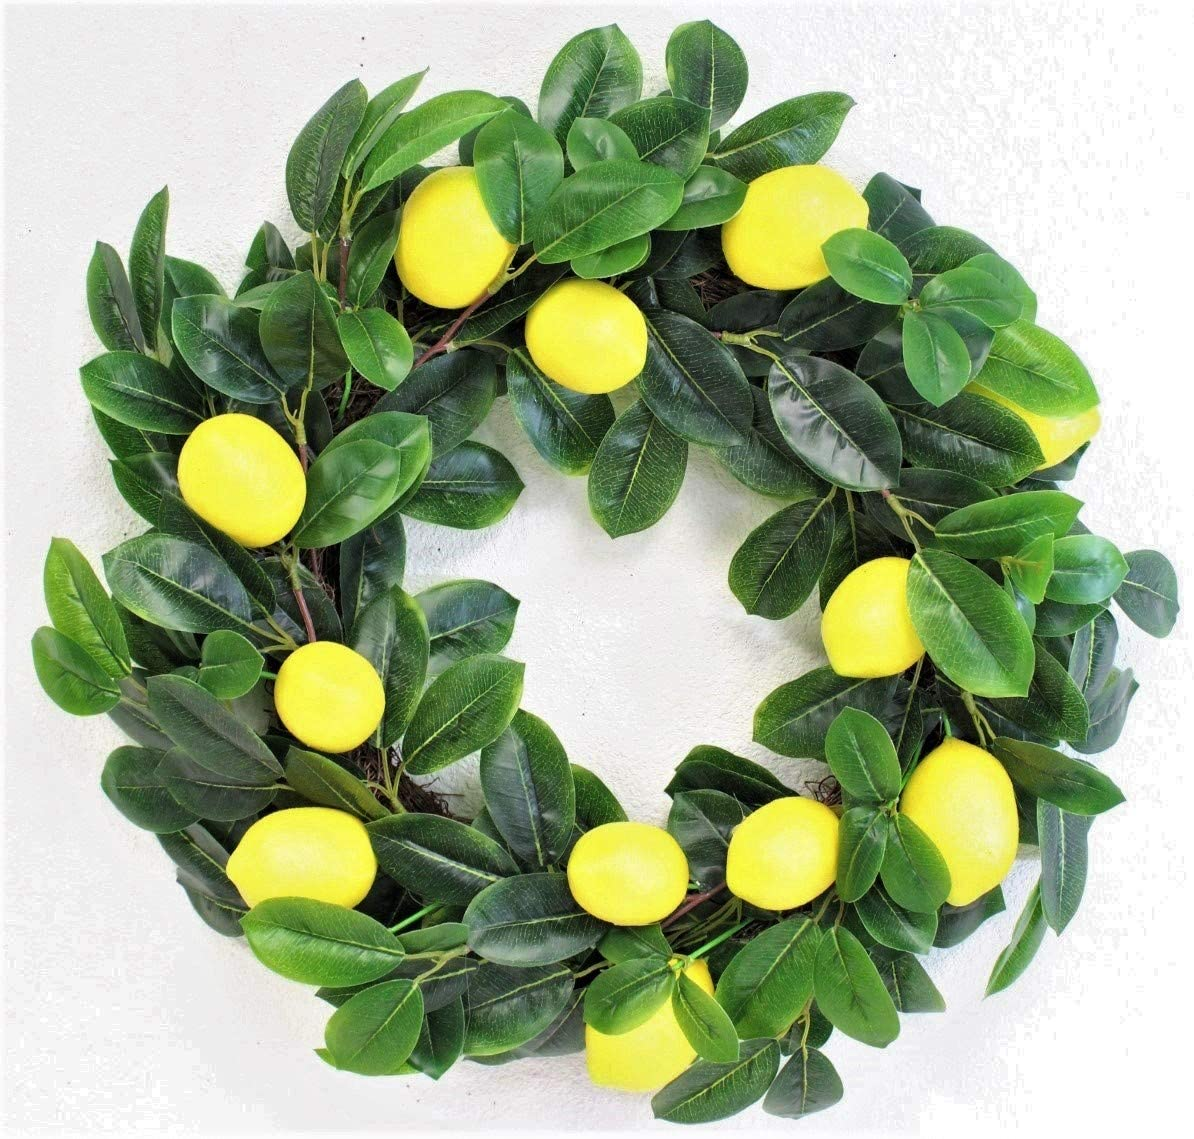 Artificial Spring Lemon with Lush Leaves Everyday Wreath 20 inches Spring Fruit for Front Door or Wall Farmhouse